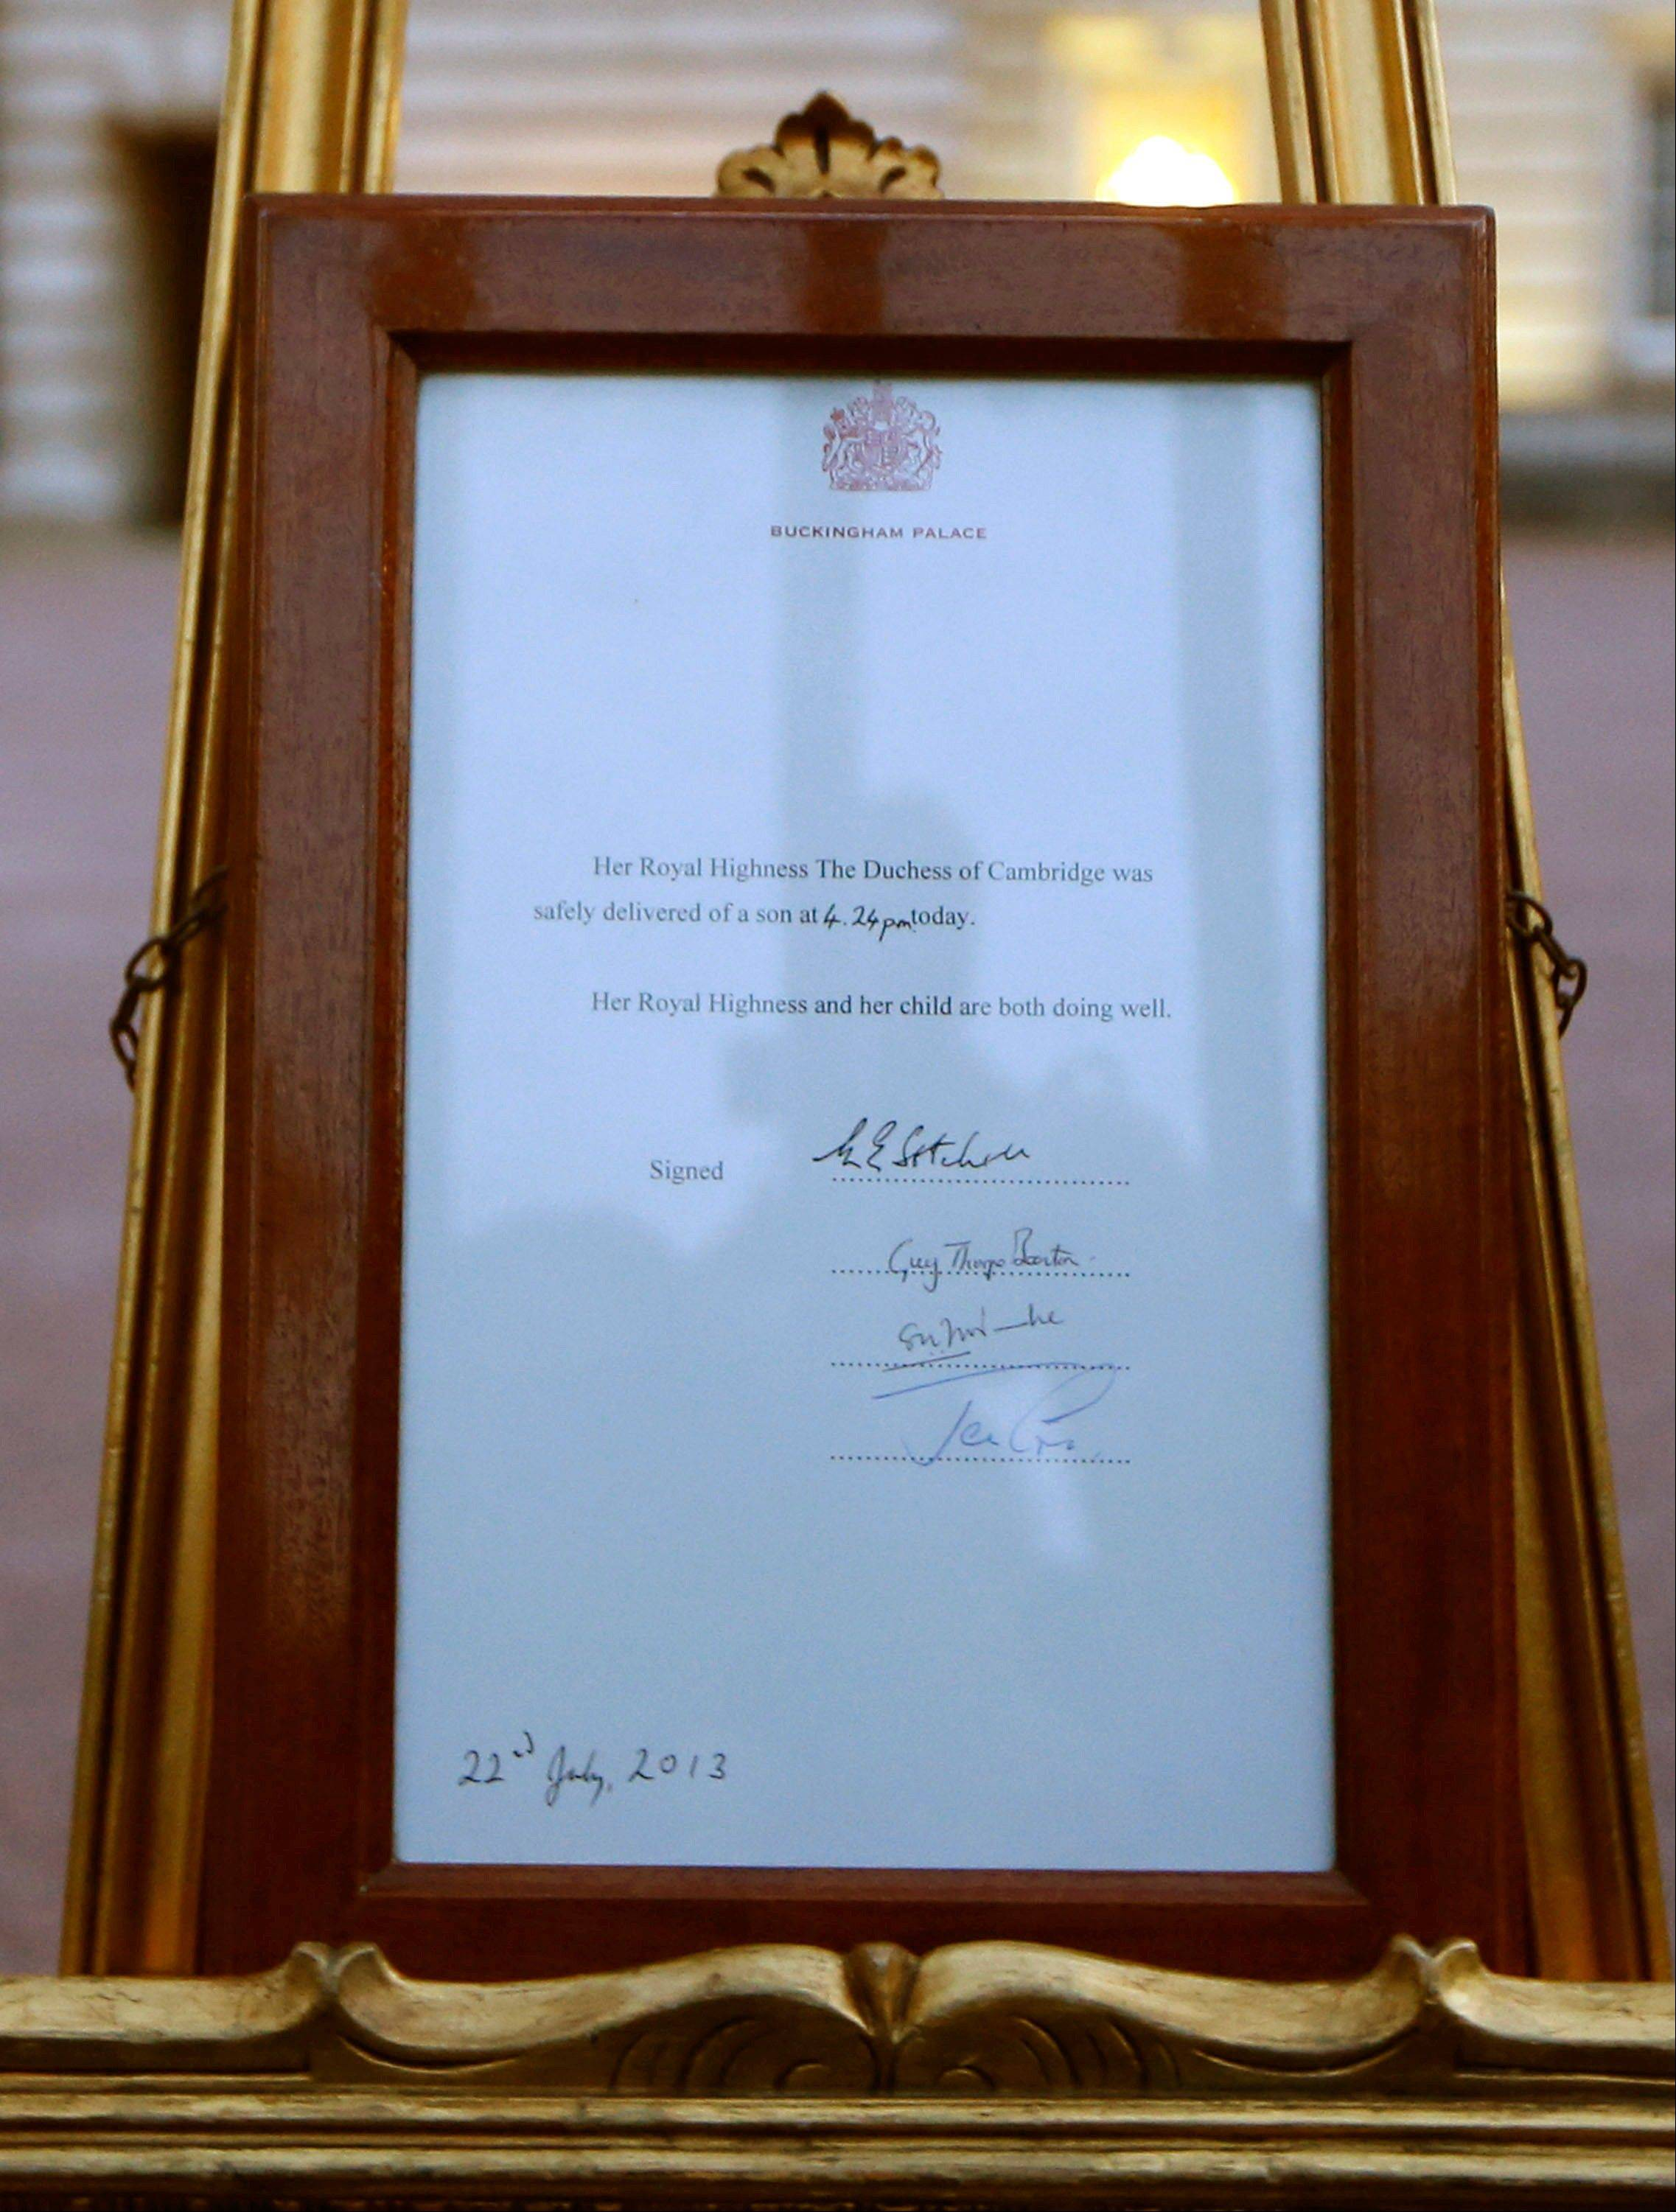 A notice proclaiming the birth of a baby boy to Prince William and Kate, Duchess of Cambridge is displayed for the public view at Buckingham Palace in London, Monday, July 22, 2013.